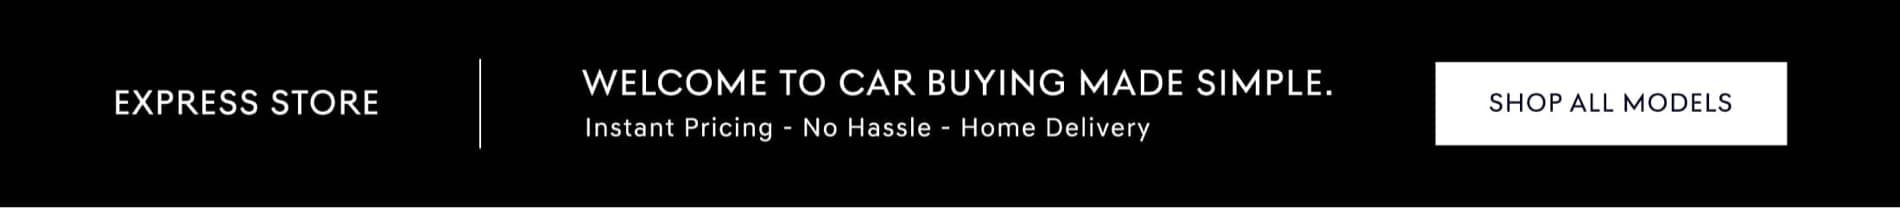 Car buying made easy banner